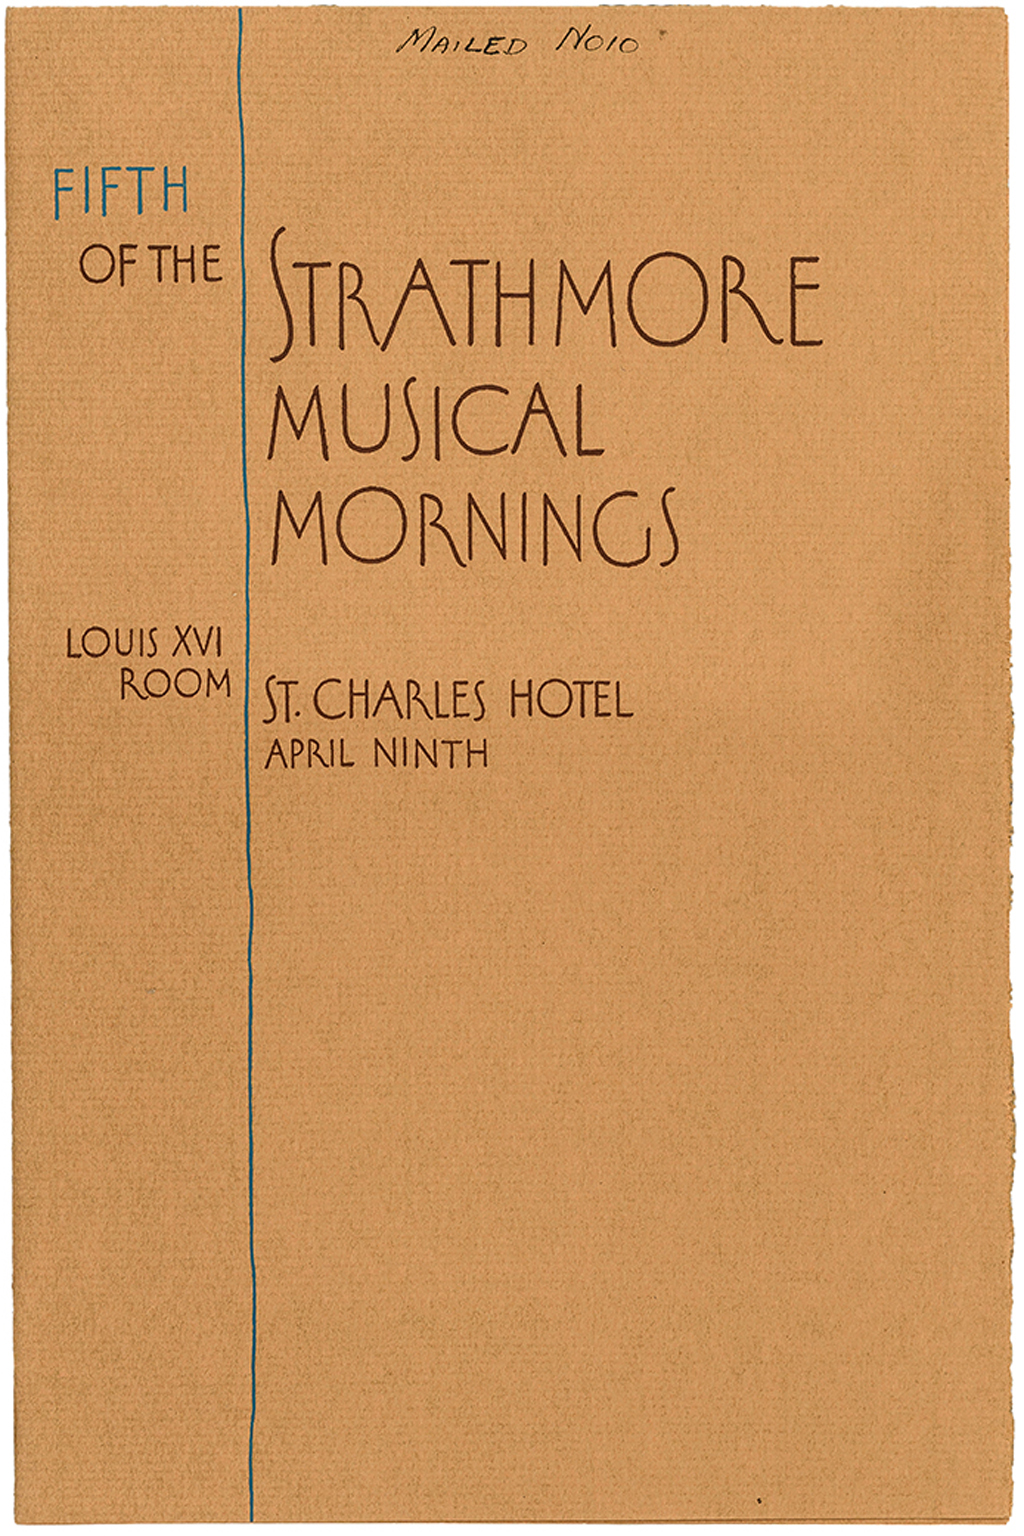 """Strathmore Musical Mornings"" from Four Demonstrations from Strathmore Town (Strathmore Paper Co., 1926). Design by Oswald Cooper. Photograph by Vincent Trinacria."